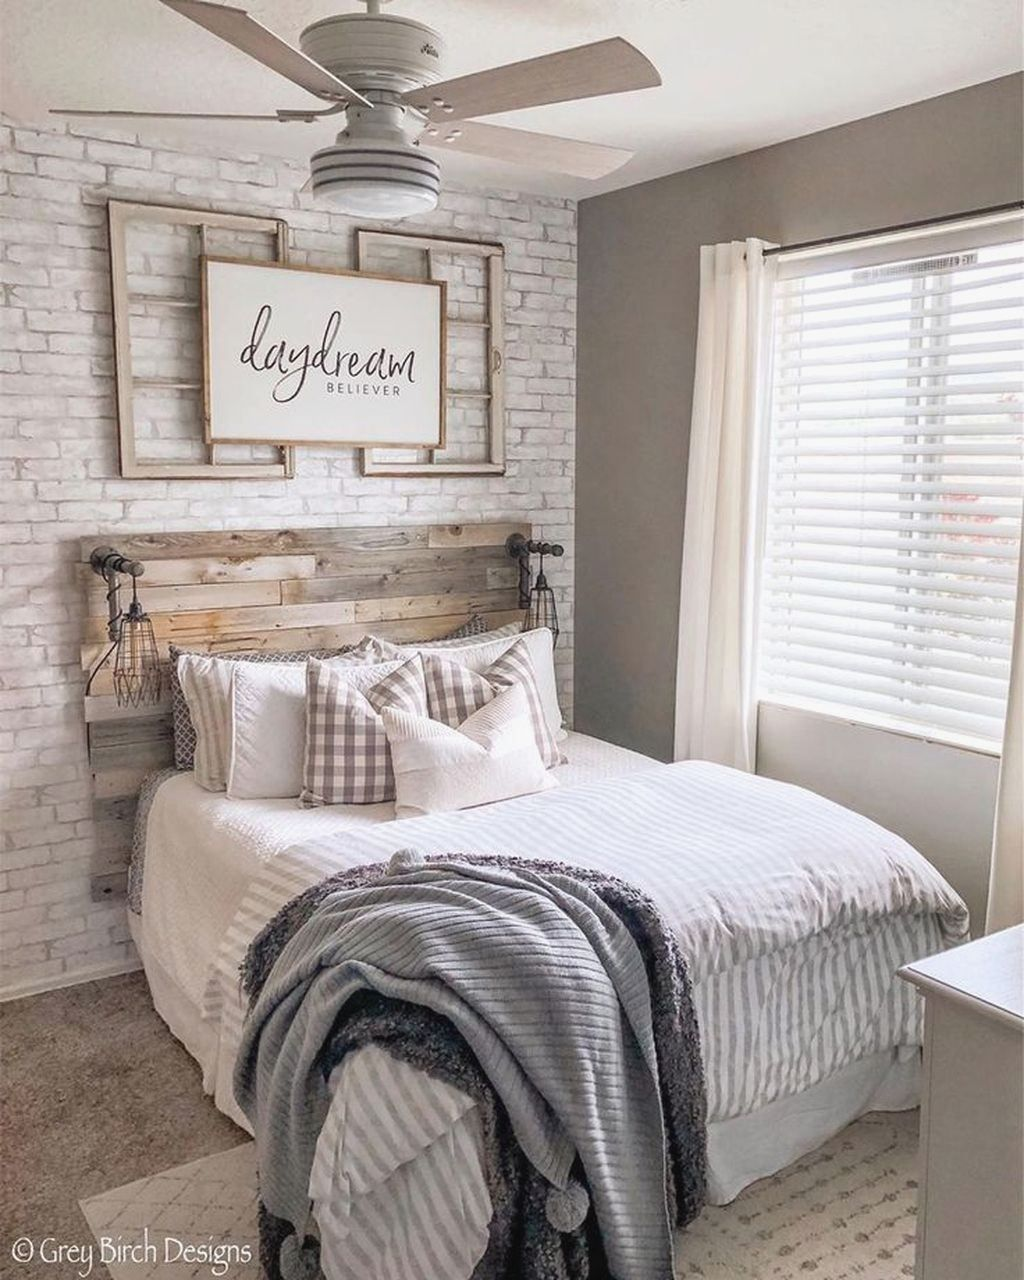 Pin On Home Ideas Decoration